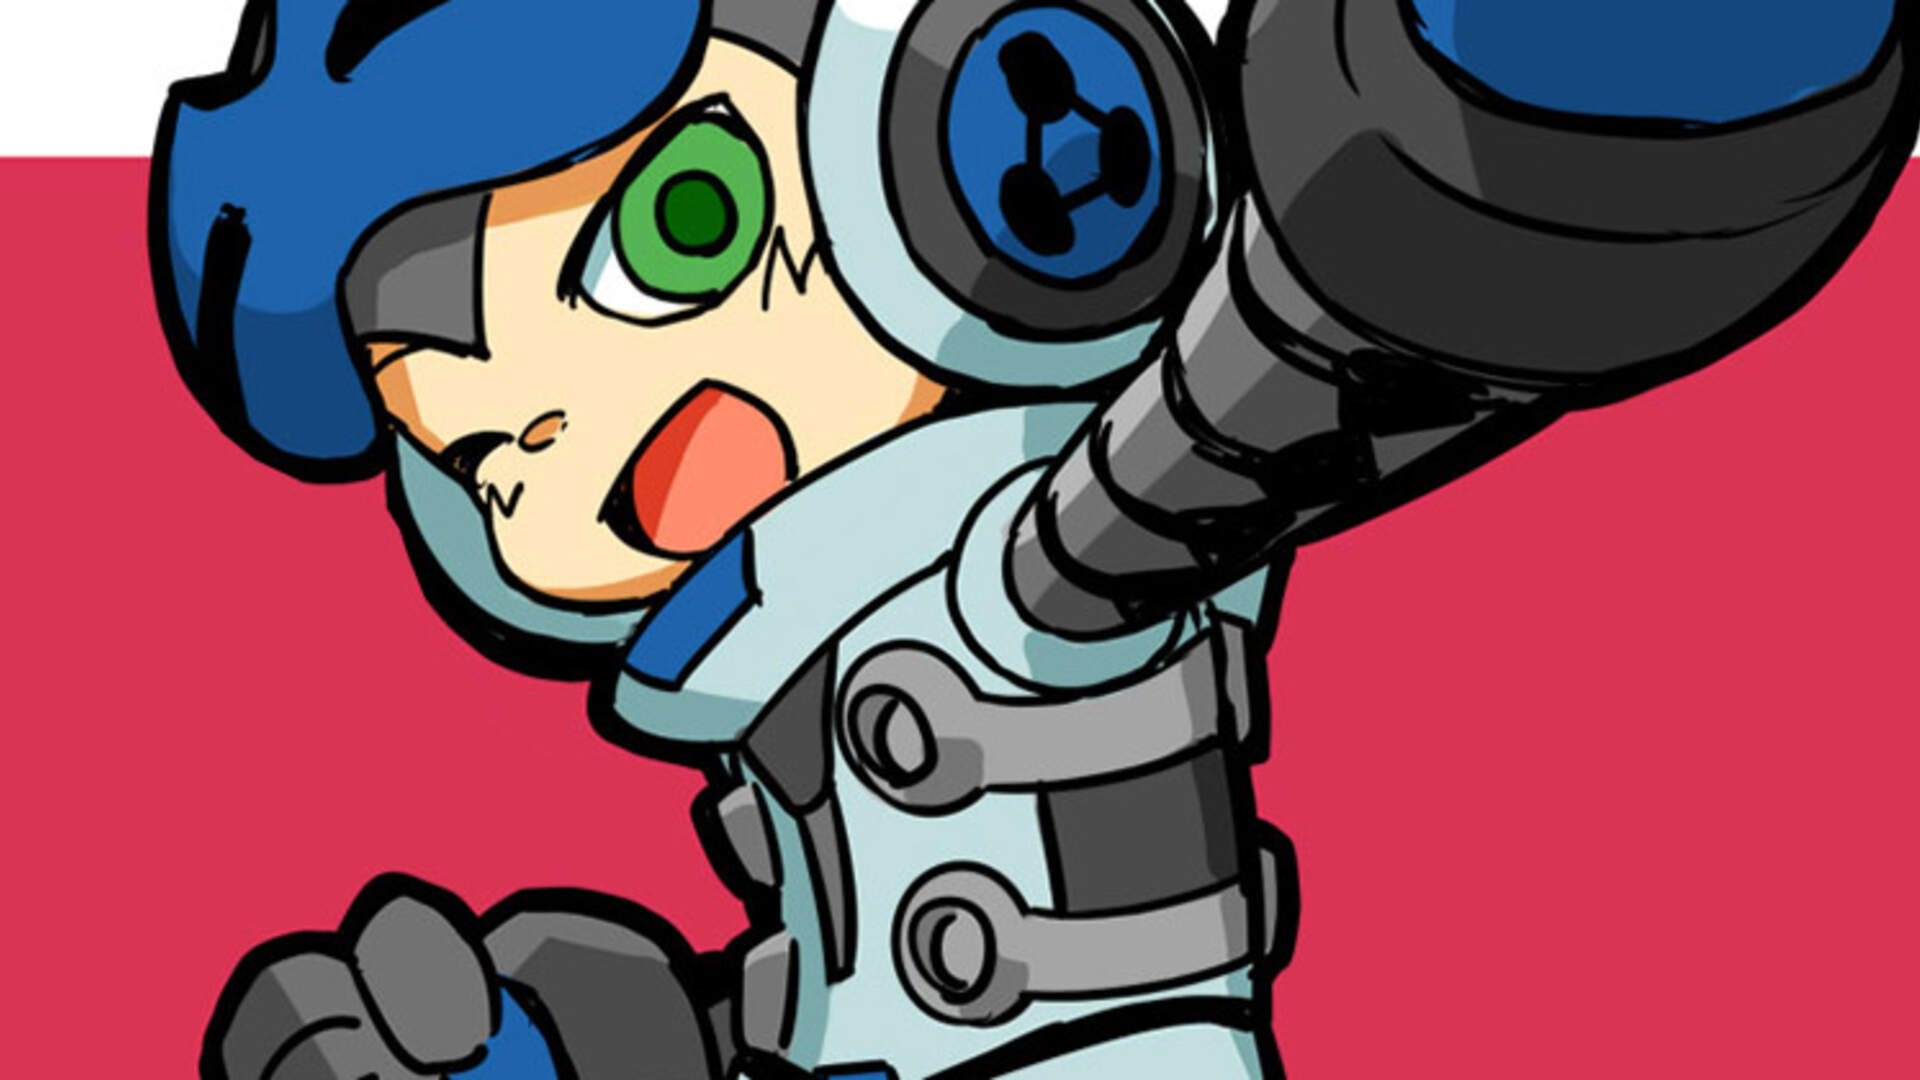 Mighty No. 9 Sustains the Spirit of Mega Man Without Being Slavish About It